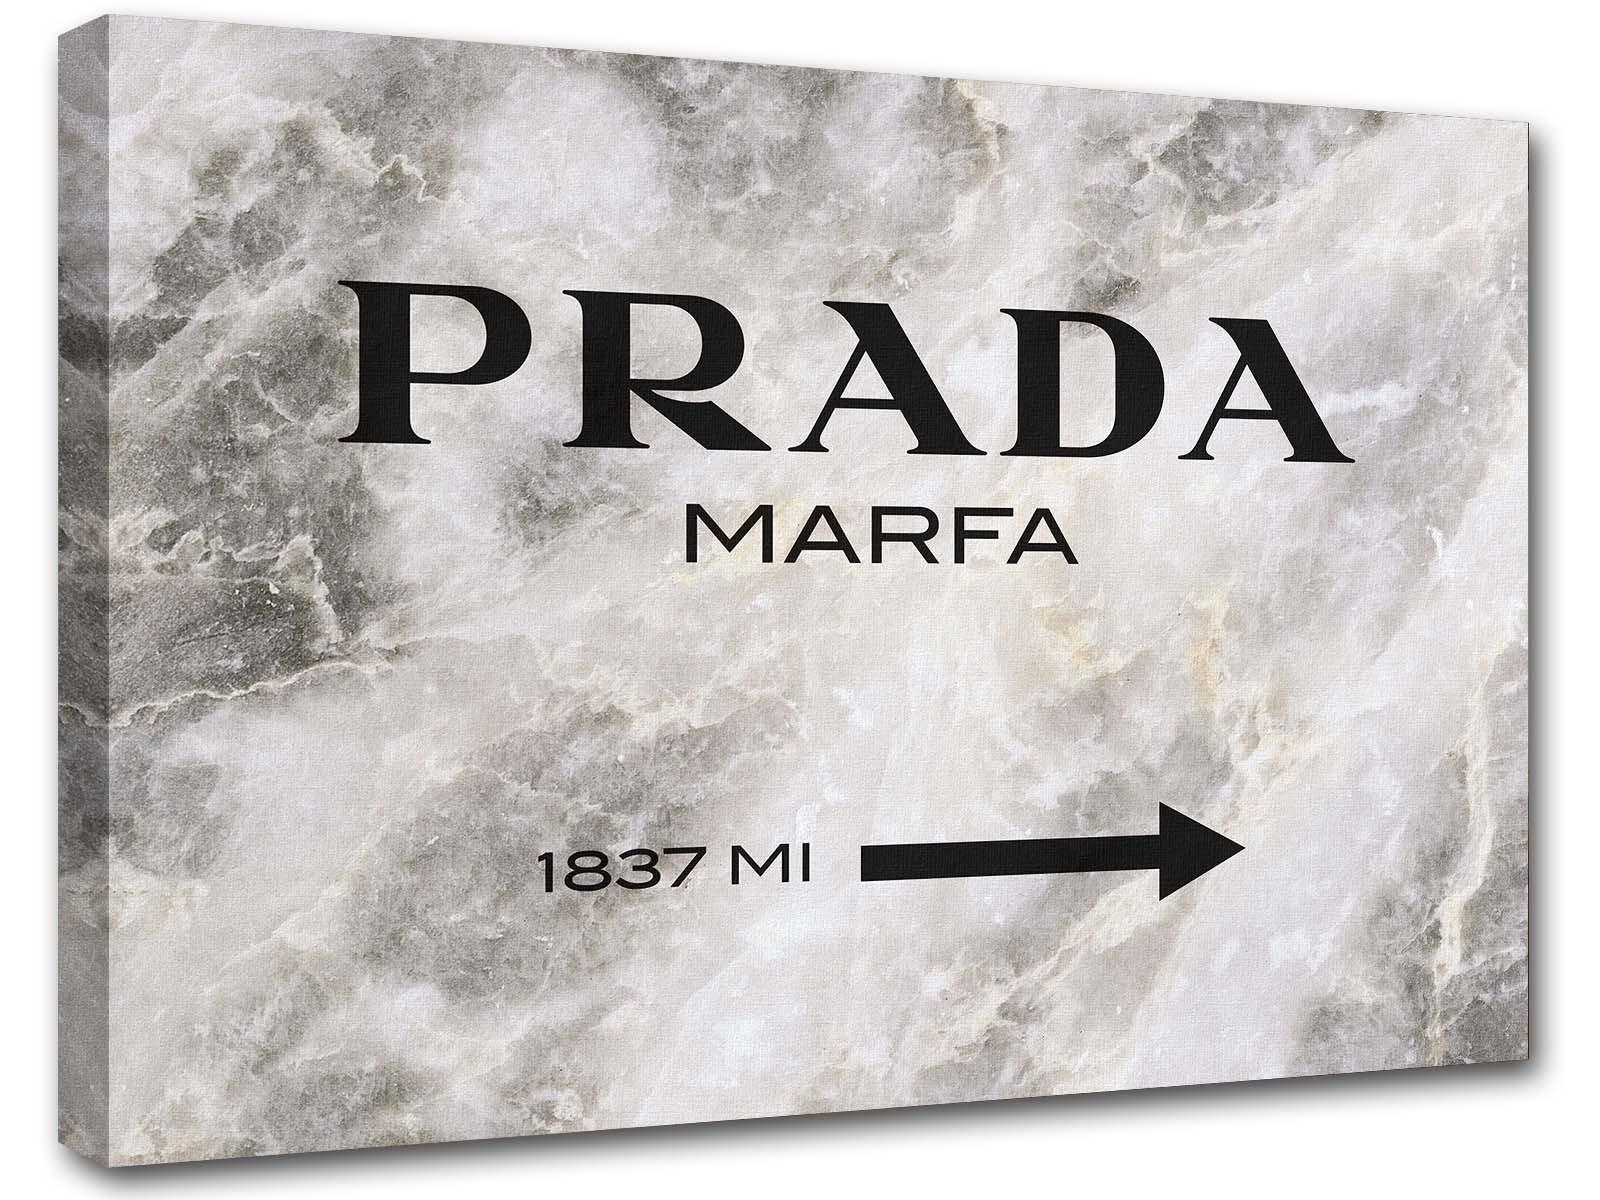 Prada Marfa Gossip Girl Fuchsia And Black Abstract Painting Regarding Prada Wall Art (Image 11 of 20)